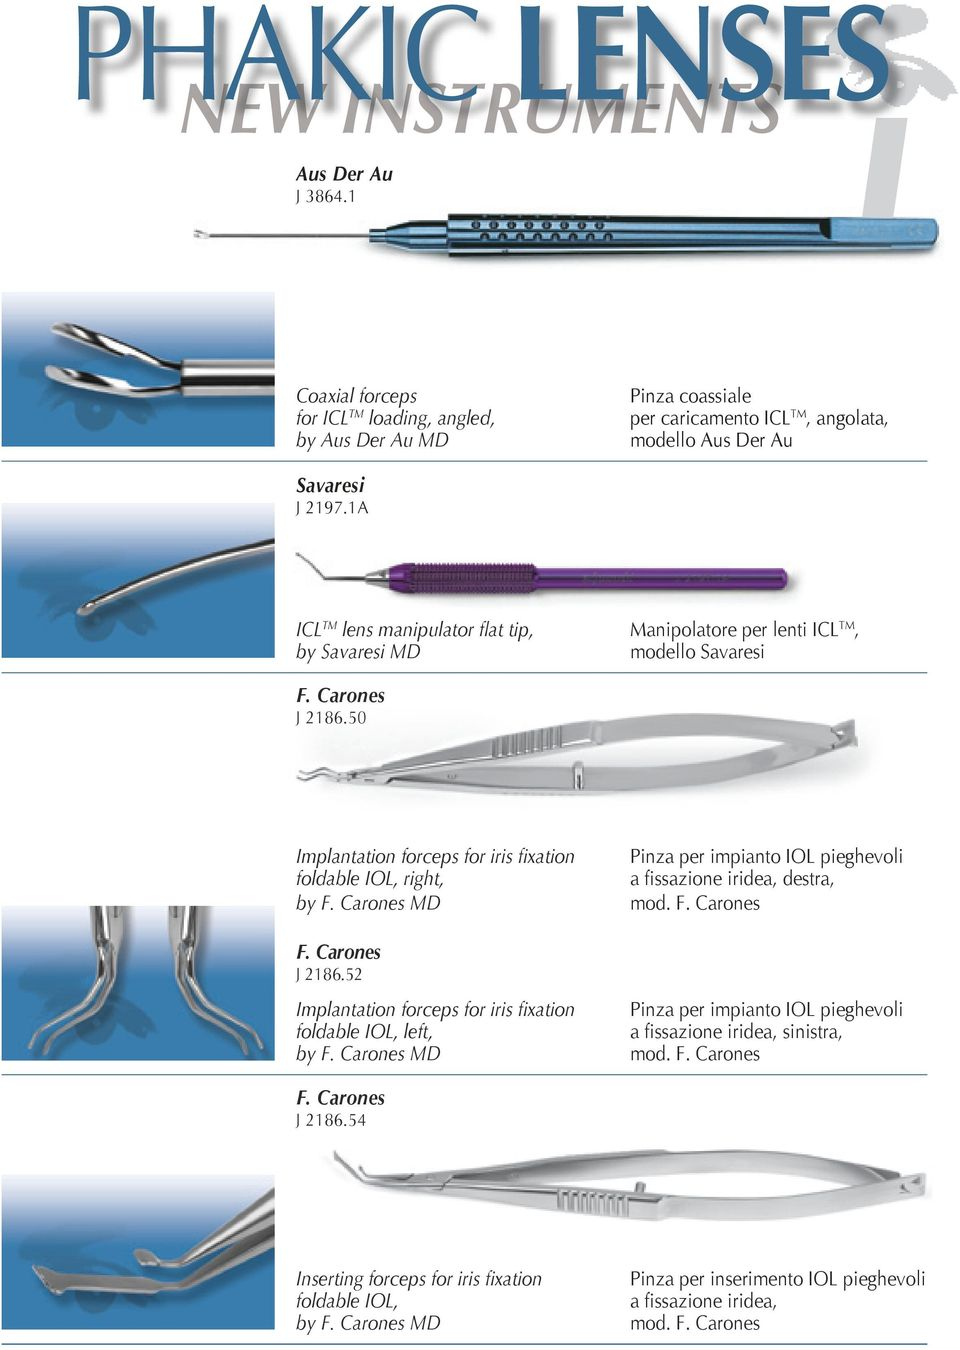 Carones J 2186.52 Implantation forceps for iris fixation foldable IOL, left, by F. Carones MD Pinza per impianto IOL pieghevoli a fissazione iridea, destra, mod. F. Carones Pinza per impianto IOL pieghevoli a fissazione iridea, sinistra, mod.